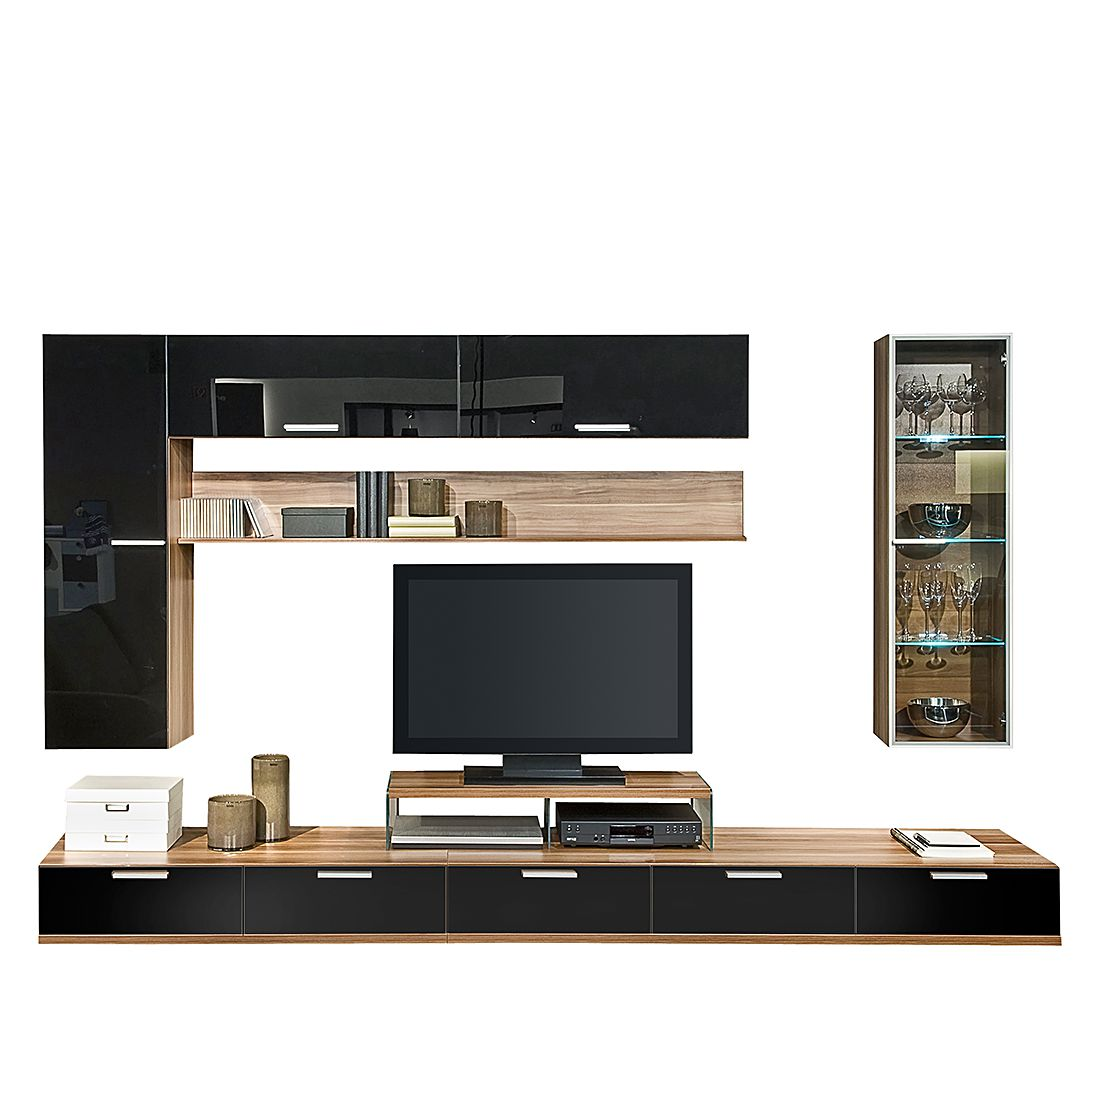 meubles tv trouvez facilement sur internet meubles tv lebonmeuble. Black Bedroom Furniture Sets. Home Design Ideas